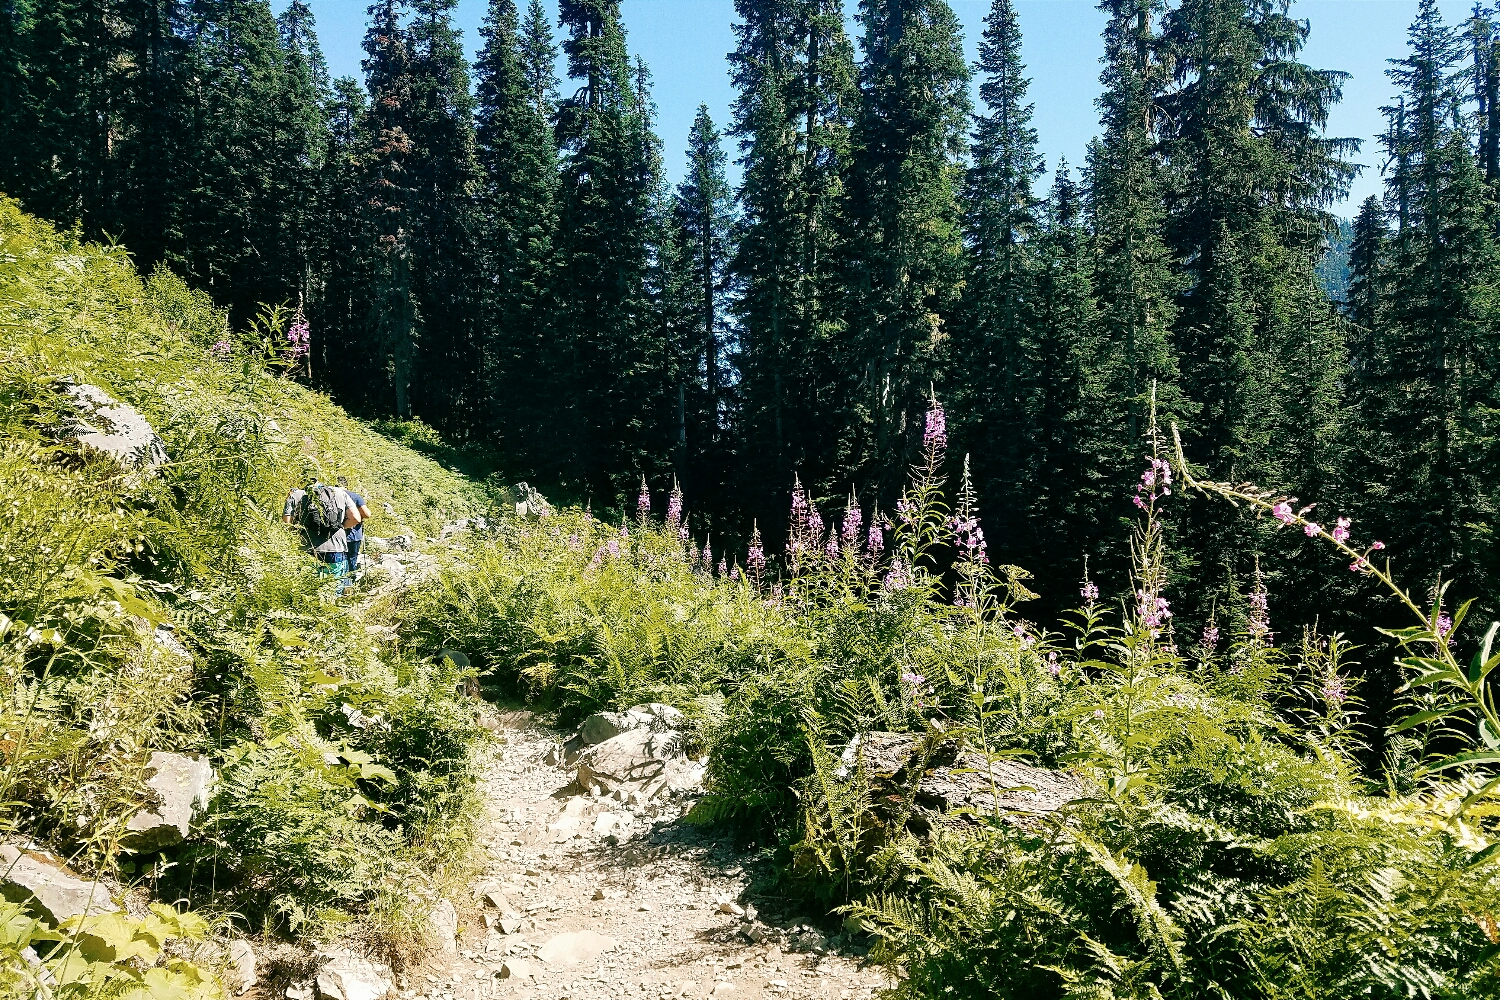 This stretch of trail will forever remind me of the new friends I made on the blogger hike that Alpine Lily planned last summer!